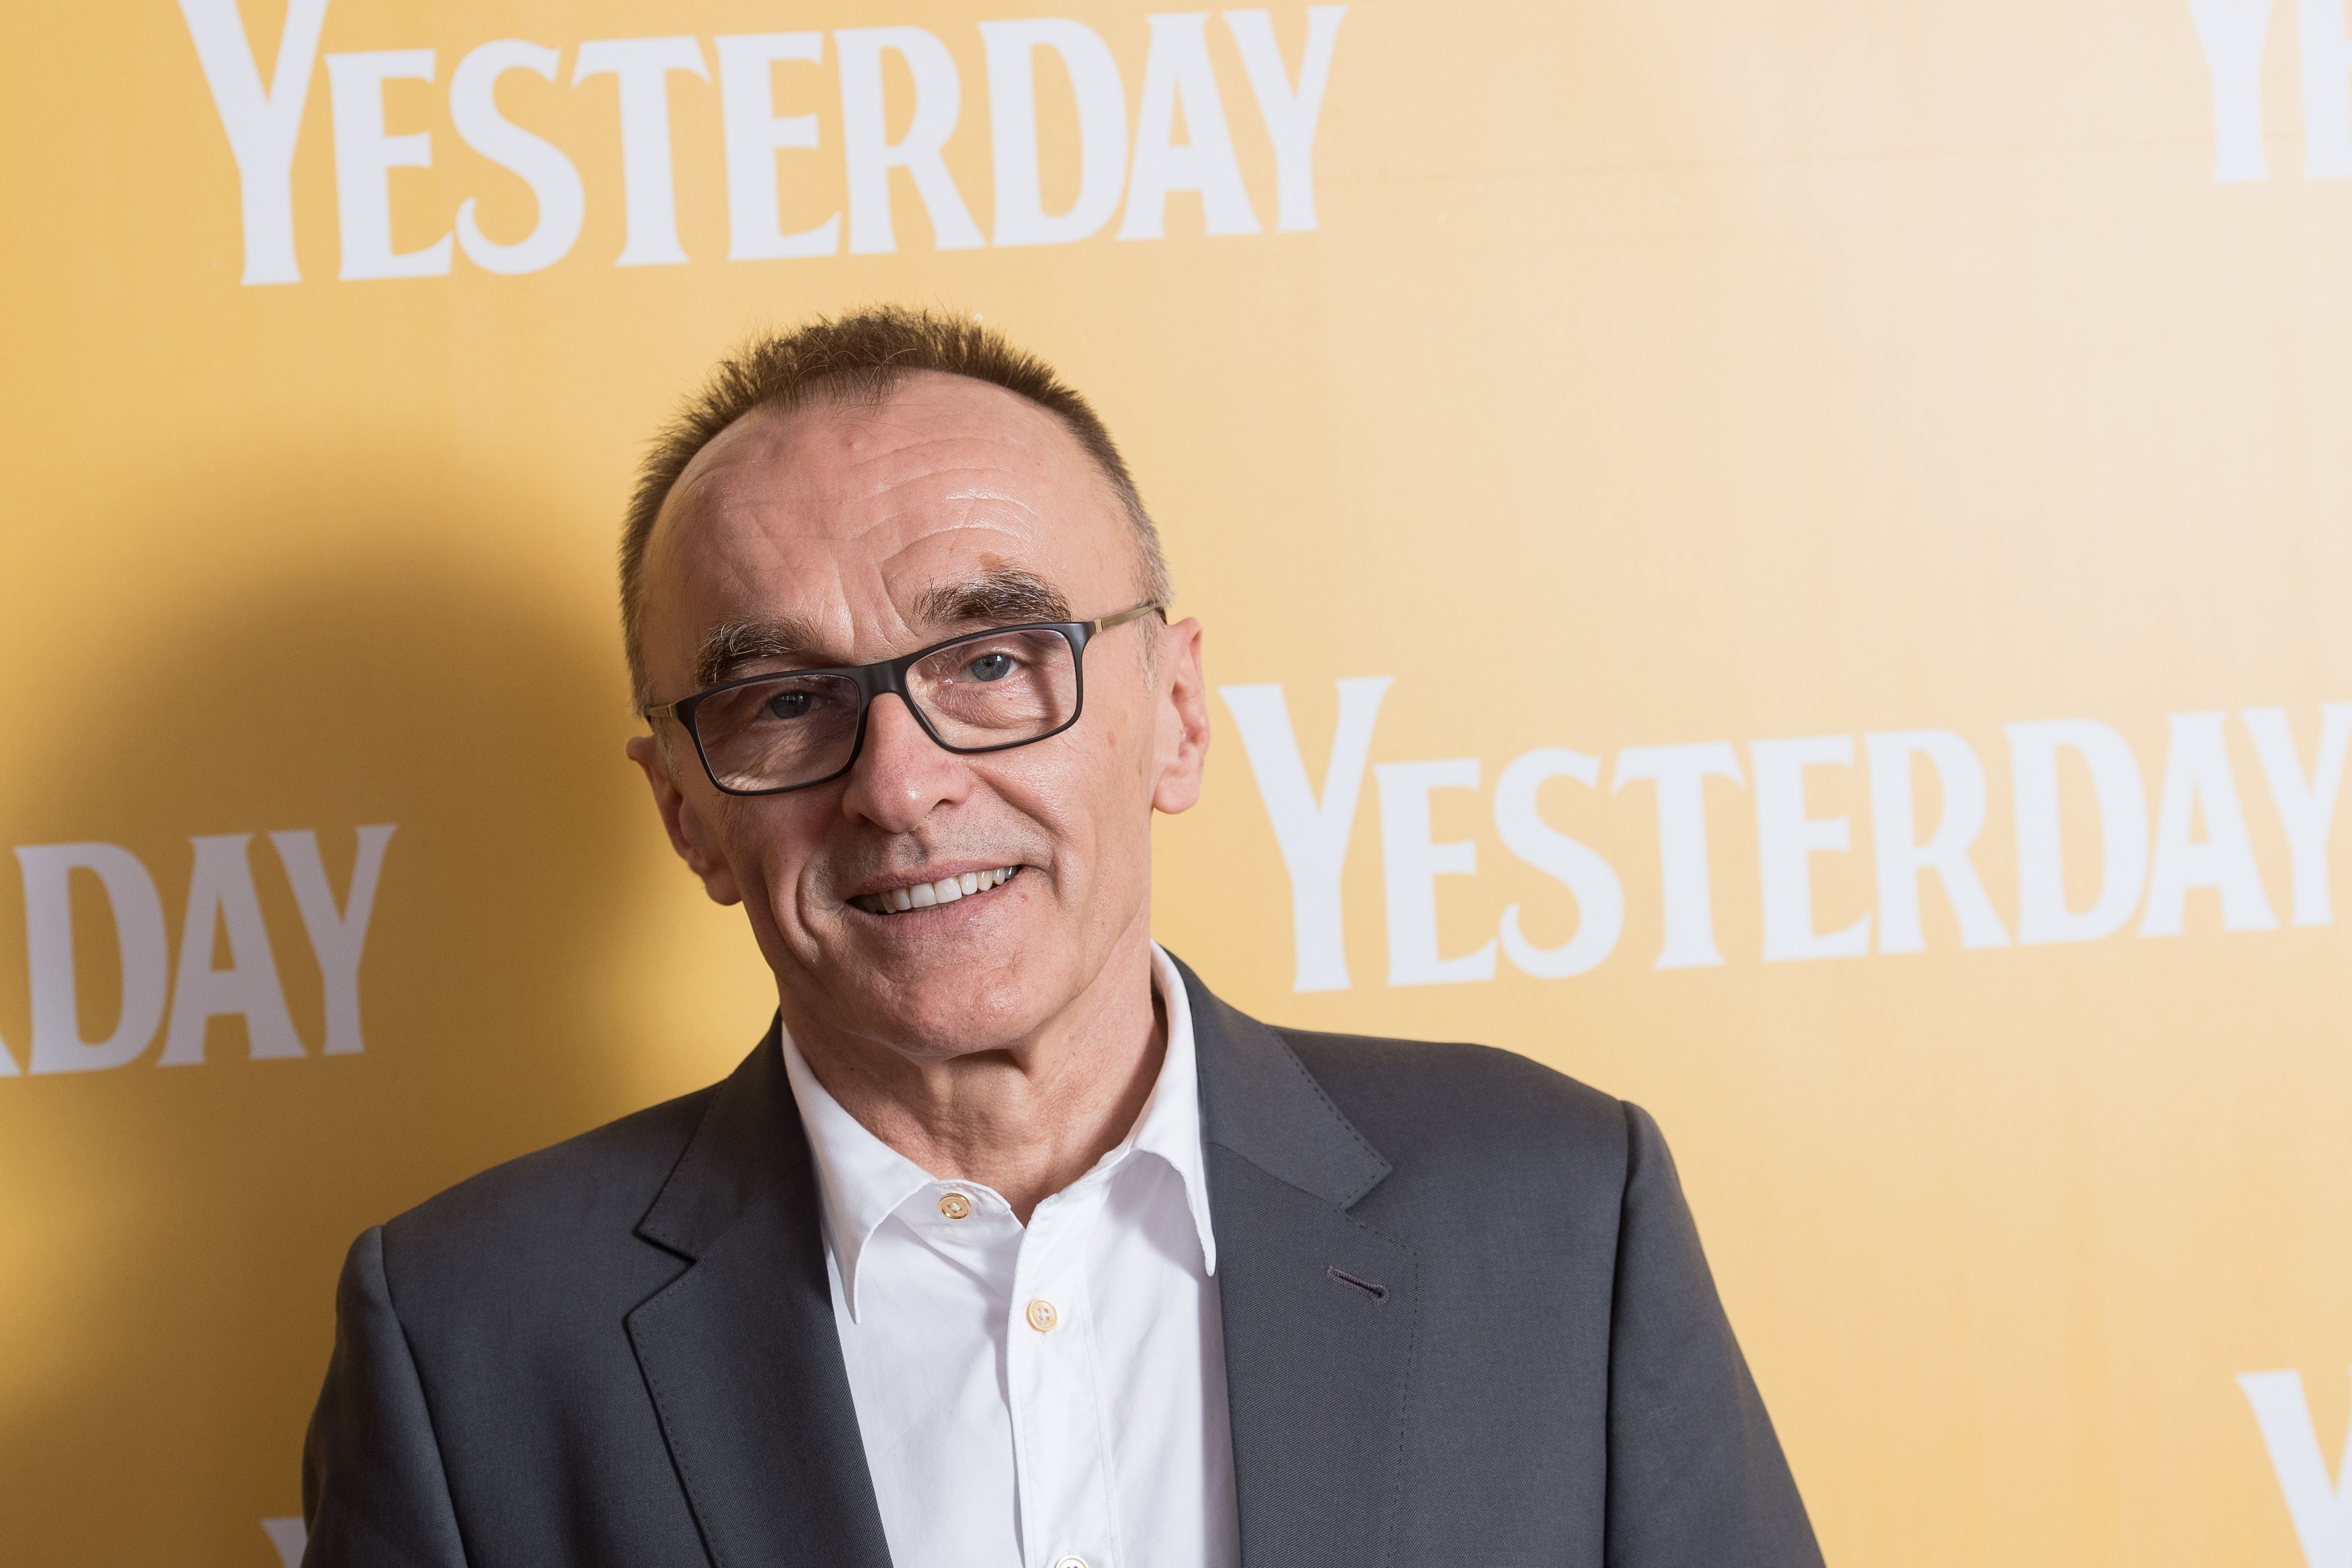 Director Danny Boyle Says Directing a Female Lead Would Make Him 'An Imposter'